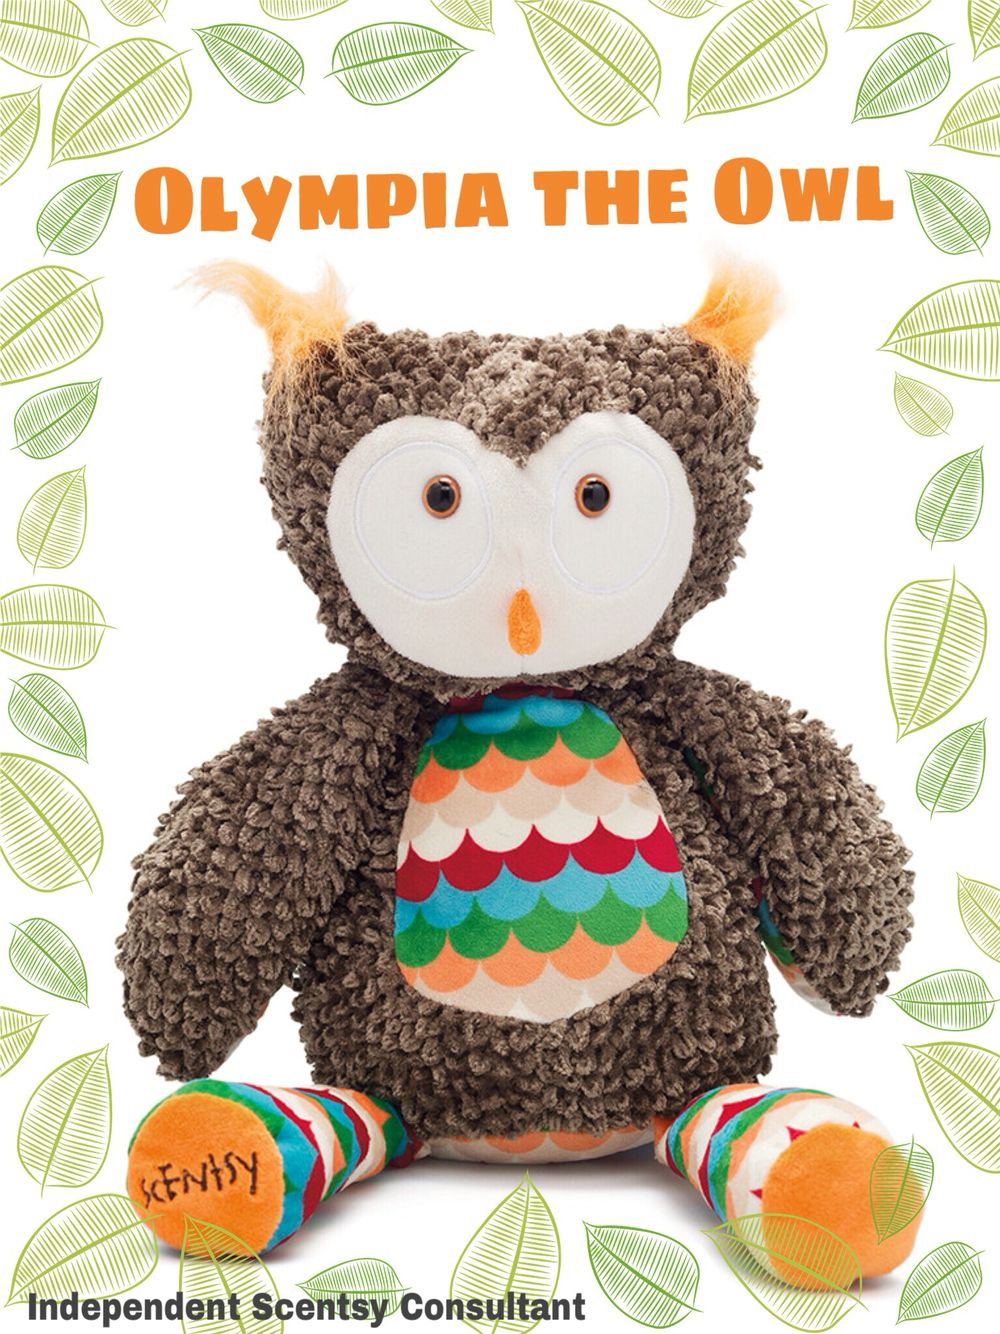 Olympia the Owl limited edition Scentsy Buddy October